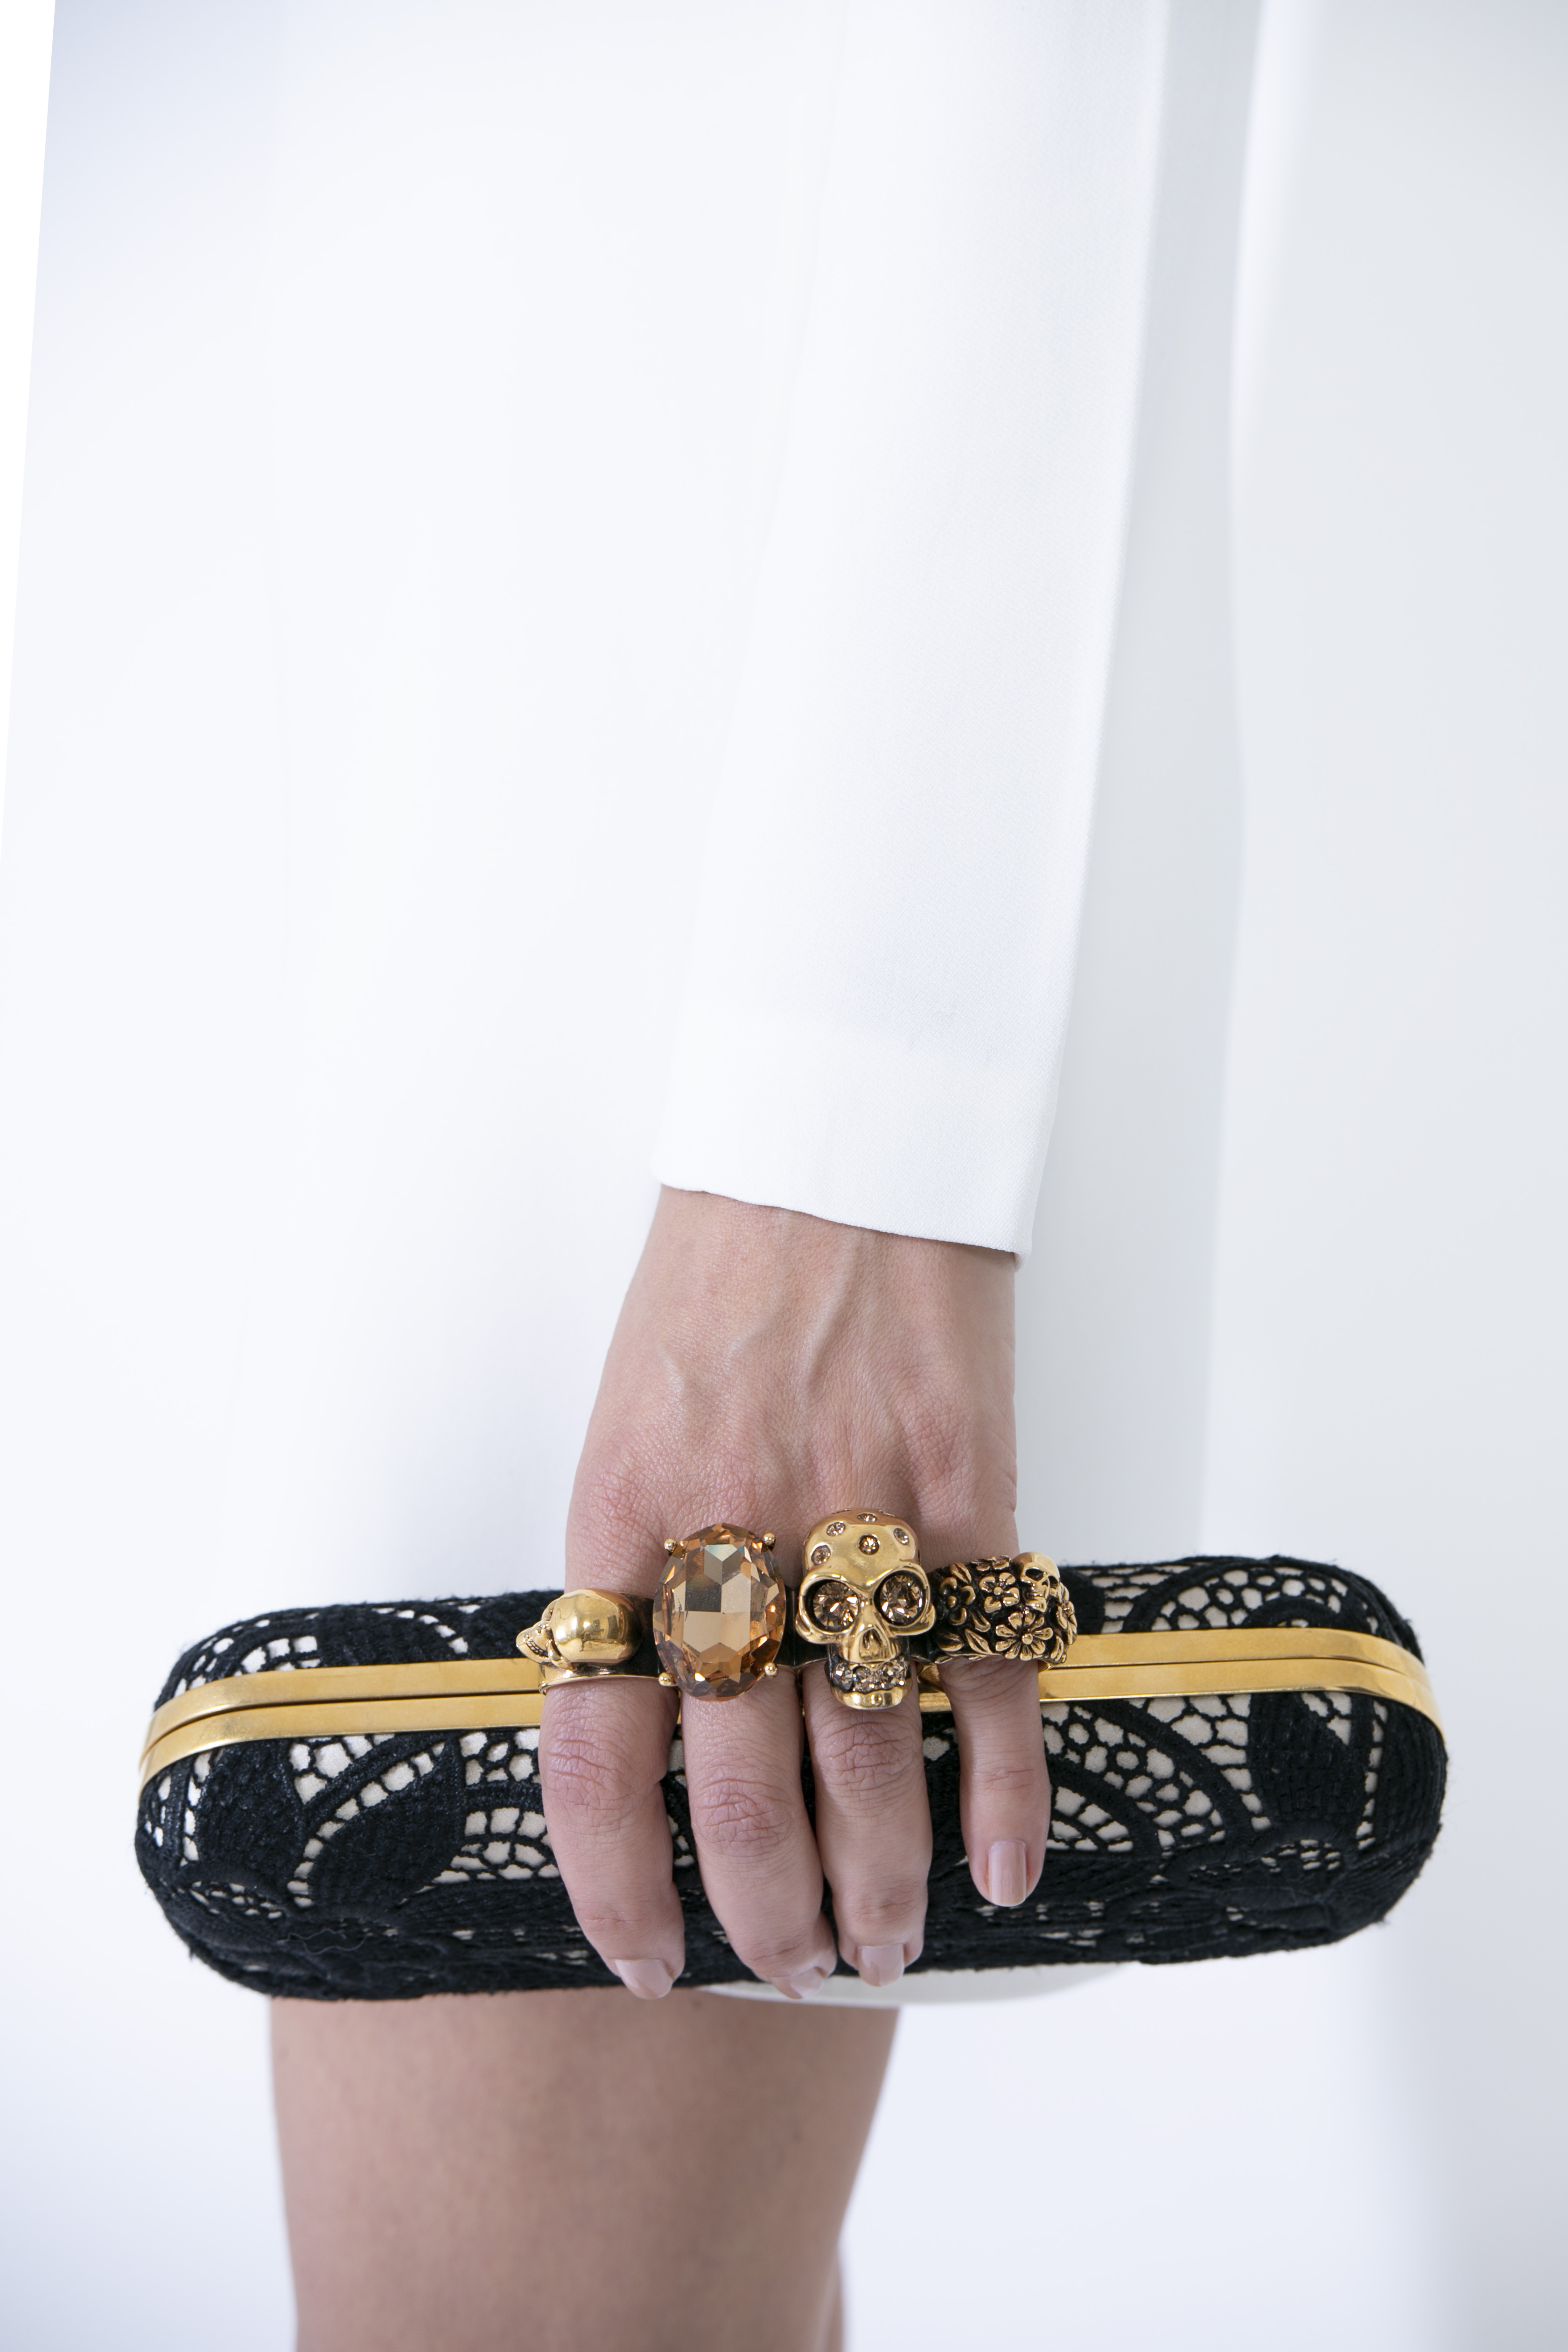 Gisele Bündchen has offered the Alexander McQueen clutch that she carried to the 2011 Met gala.